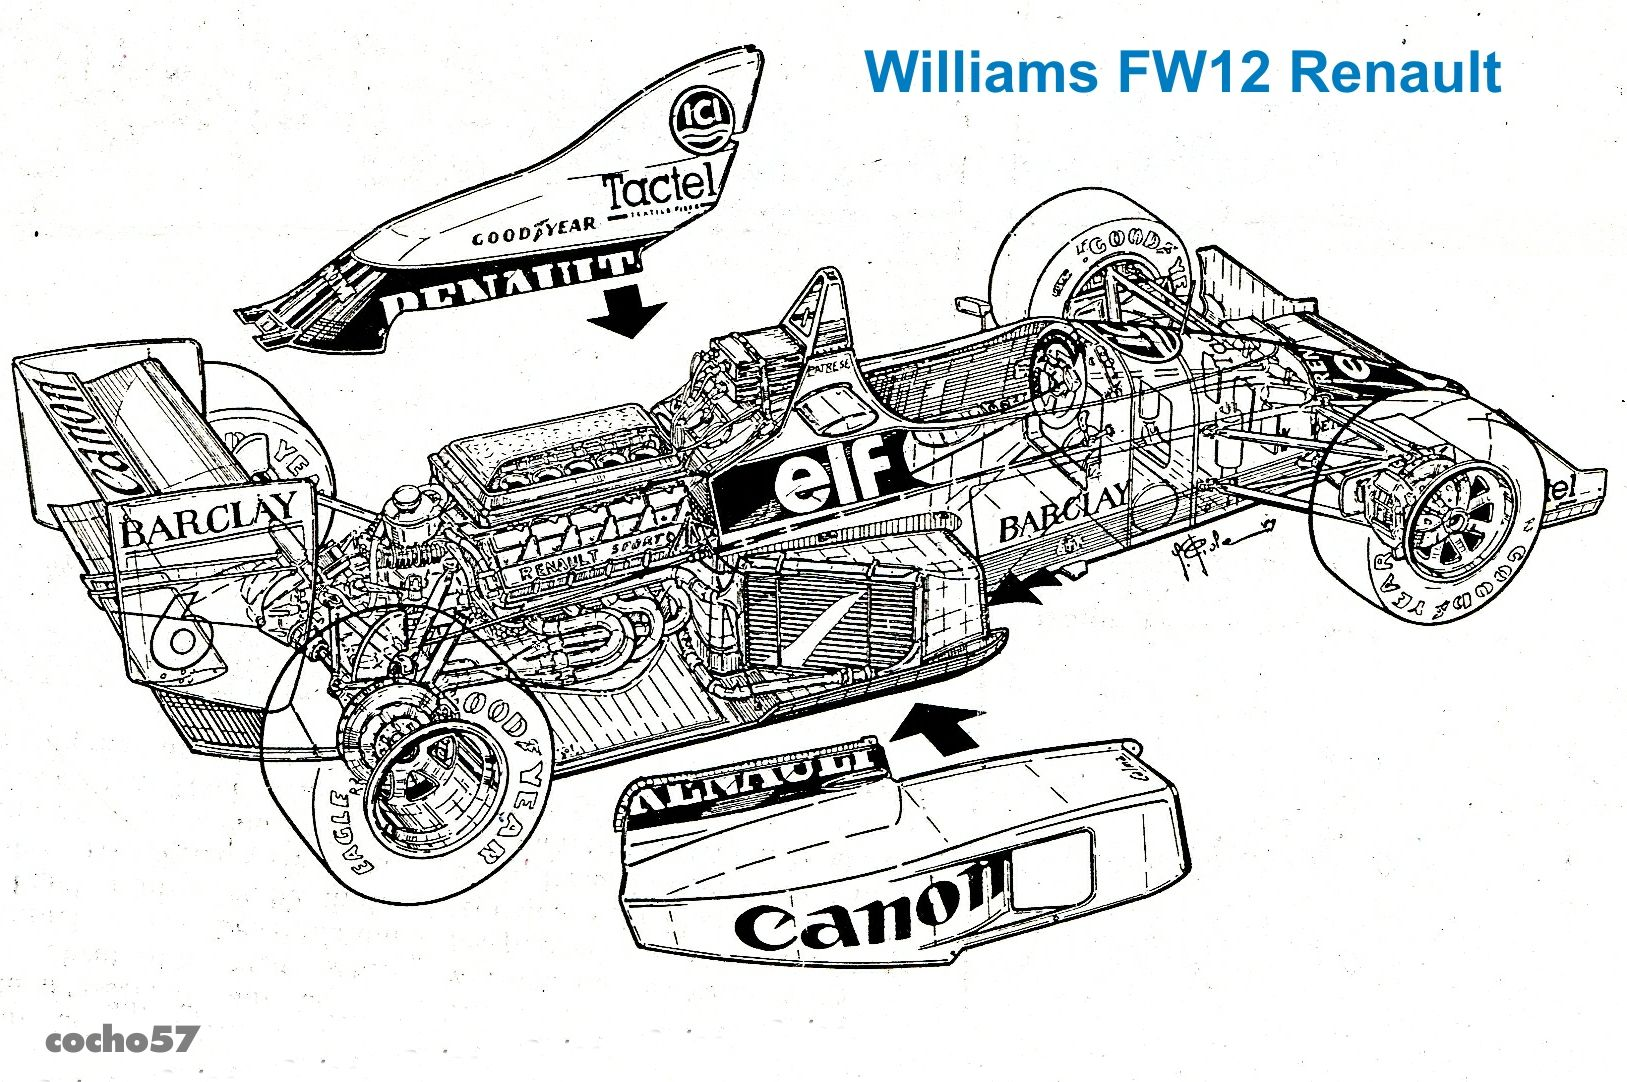 Williams Fw 12 Judd Diseno Patrick Head Enrique Scalabroni